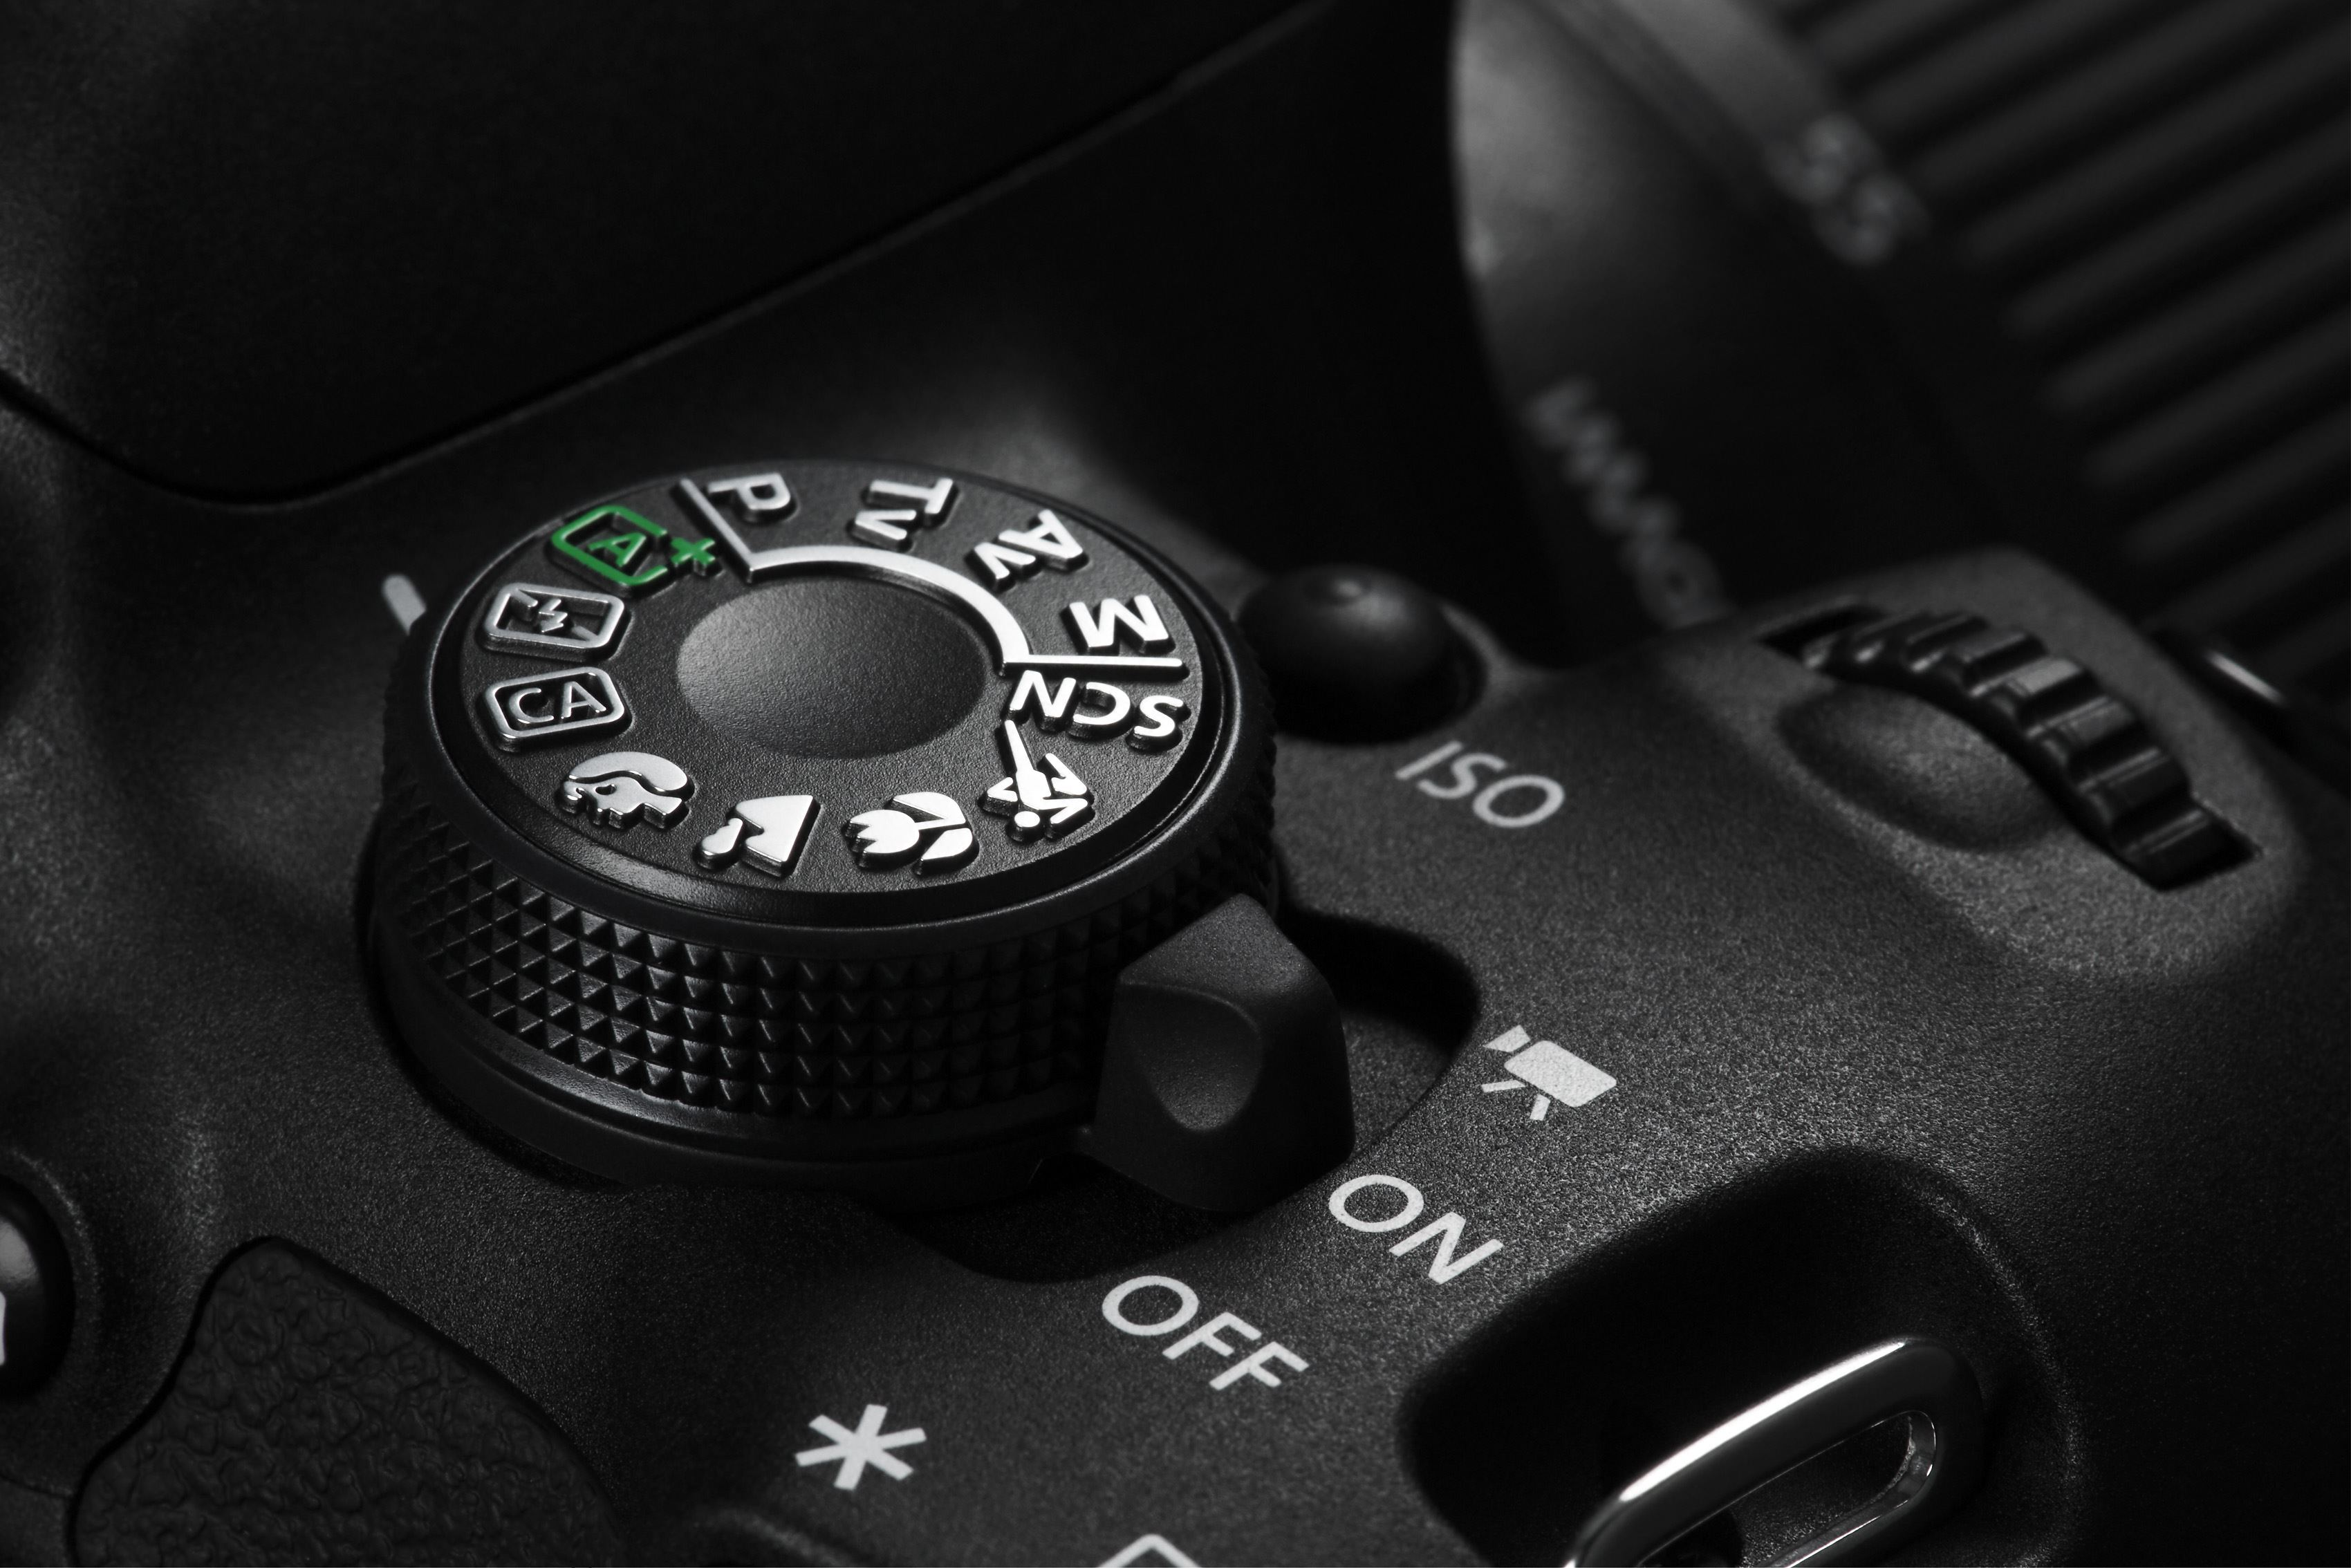 Product-1-CREATIVE-DETAIL-MODE-DIAL.jpg